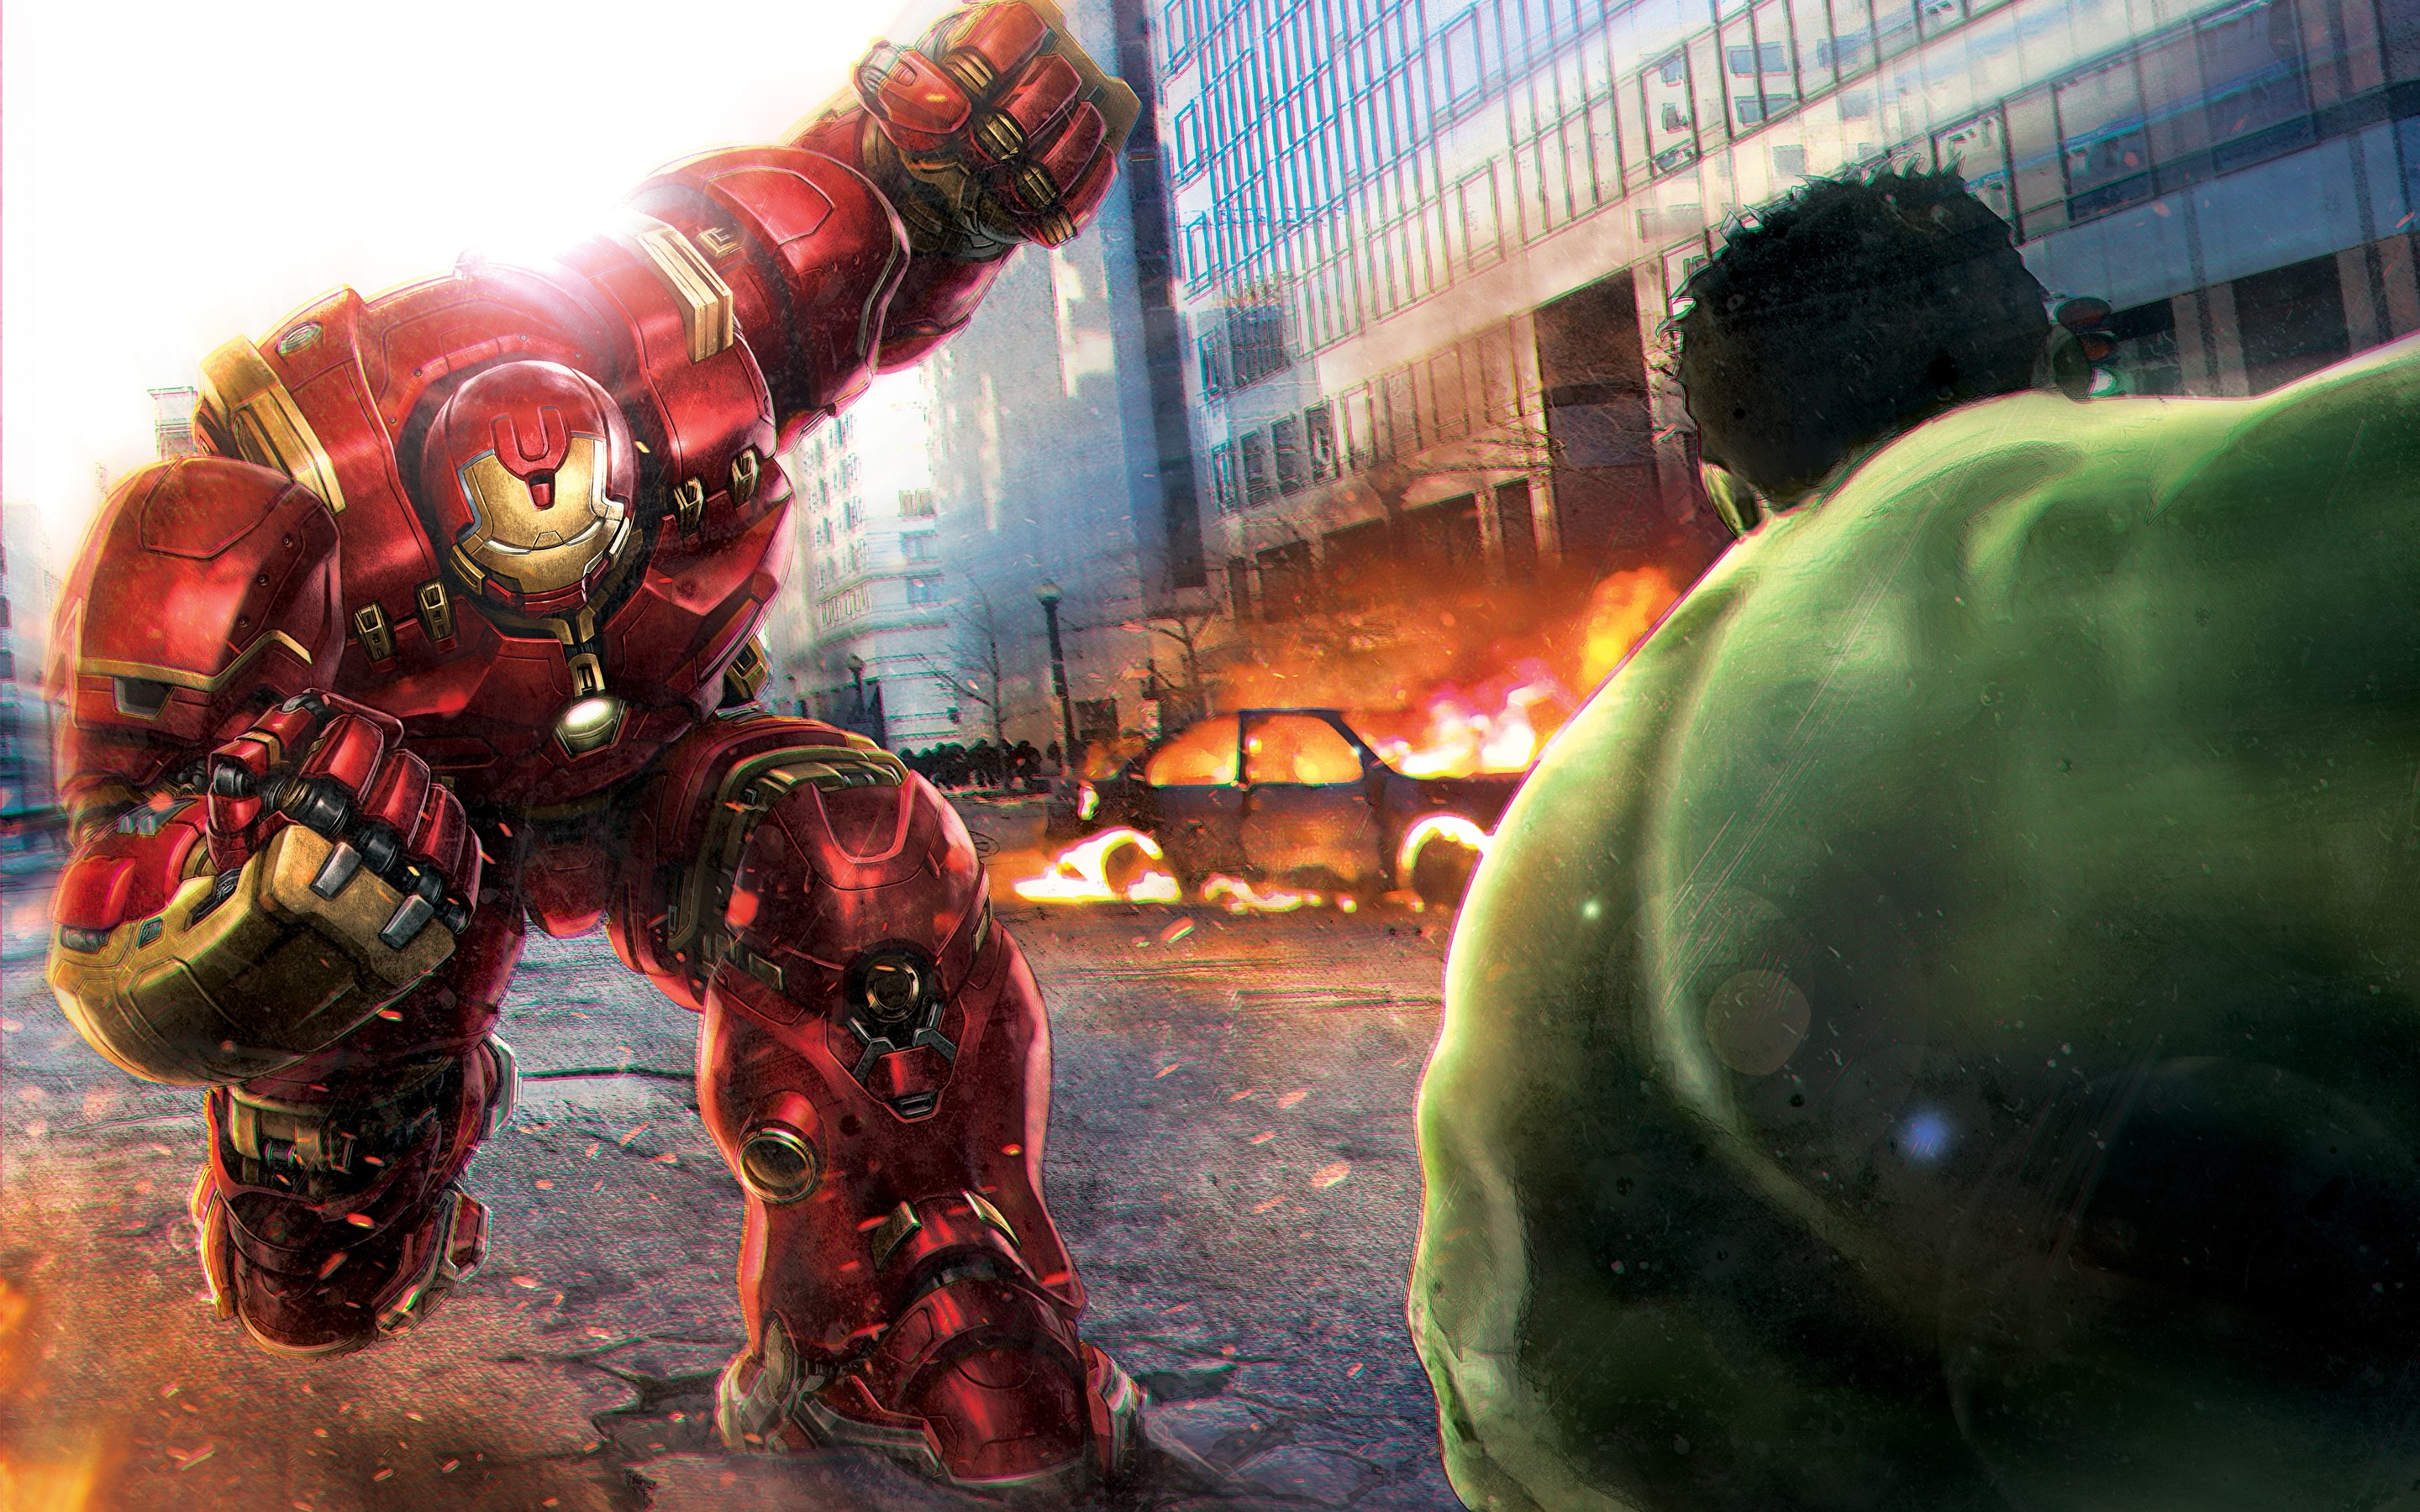 2048x1152 hulk vs hulkbuster 2048x1152 resolution hd 4k wallpapers